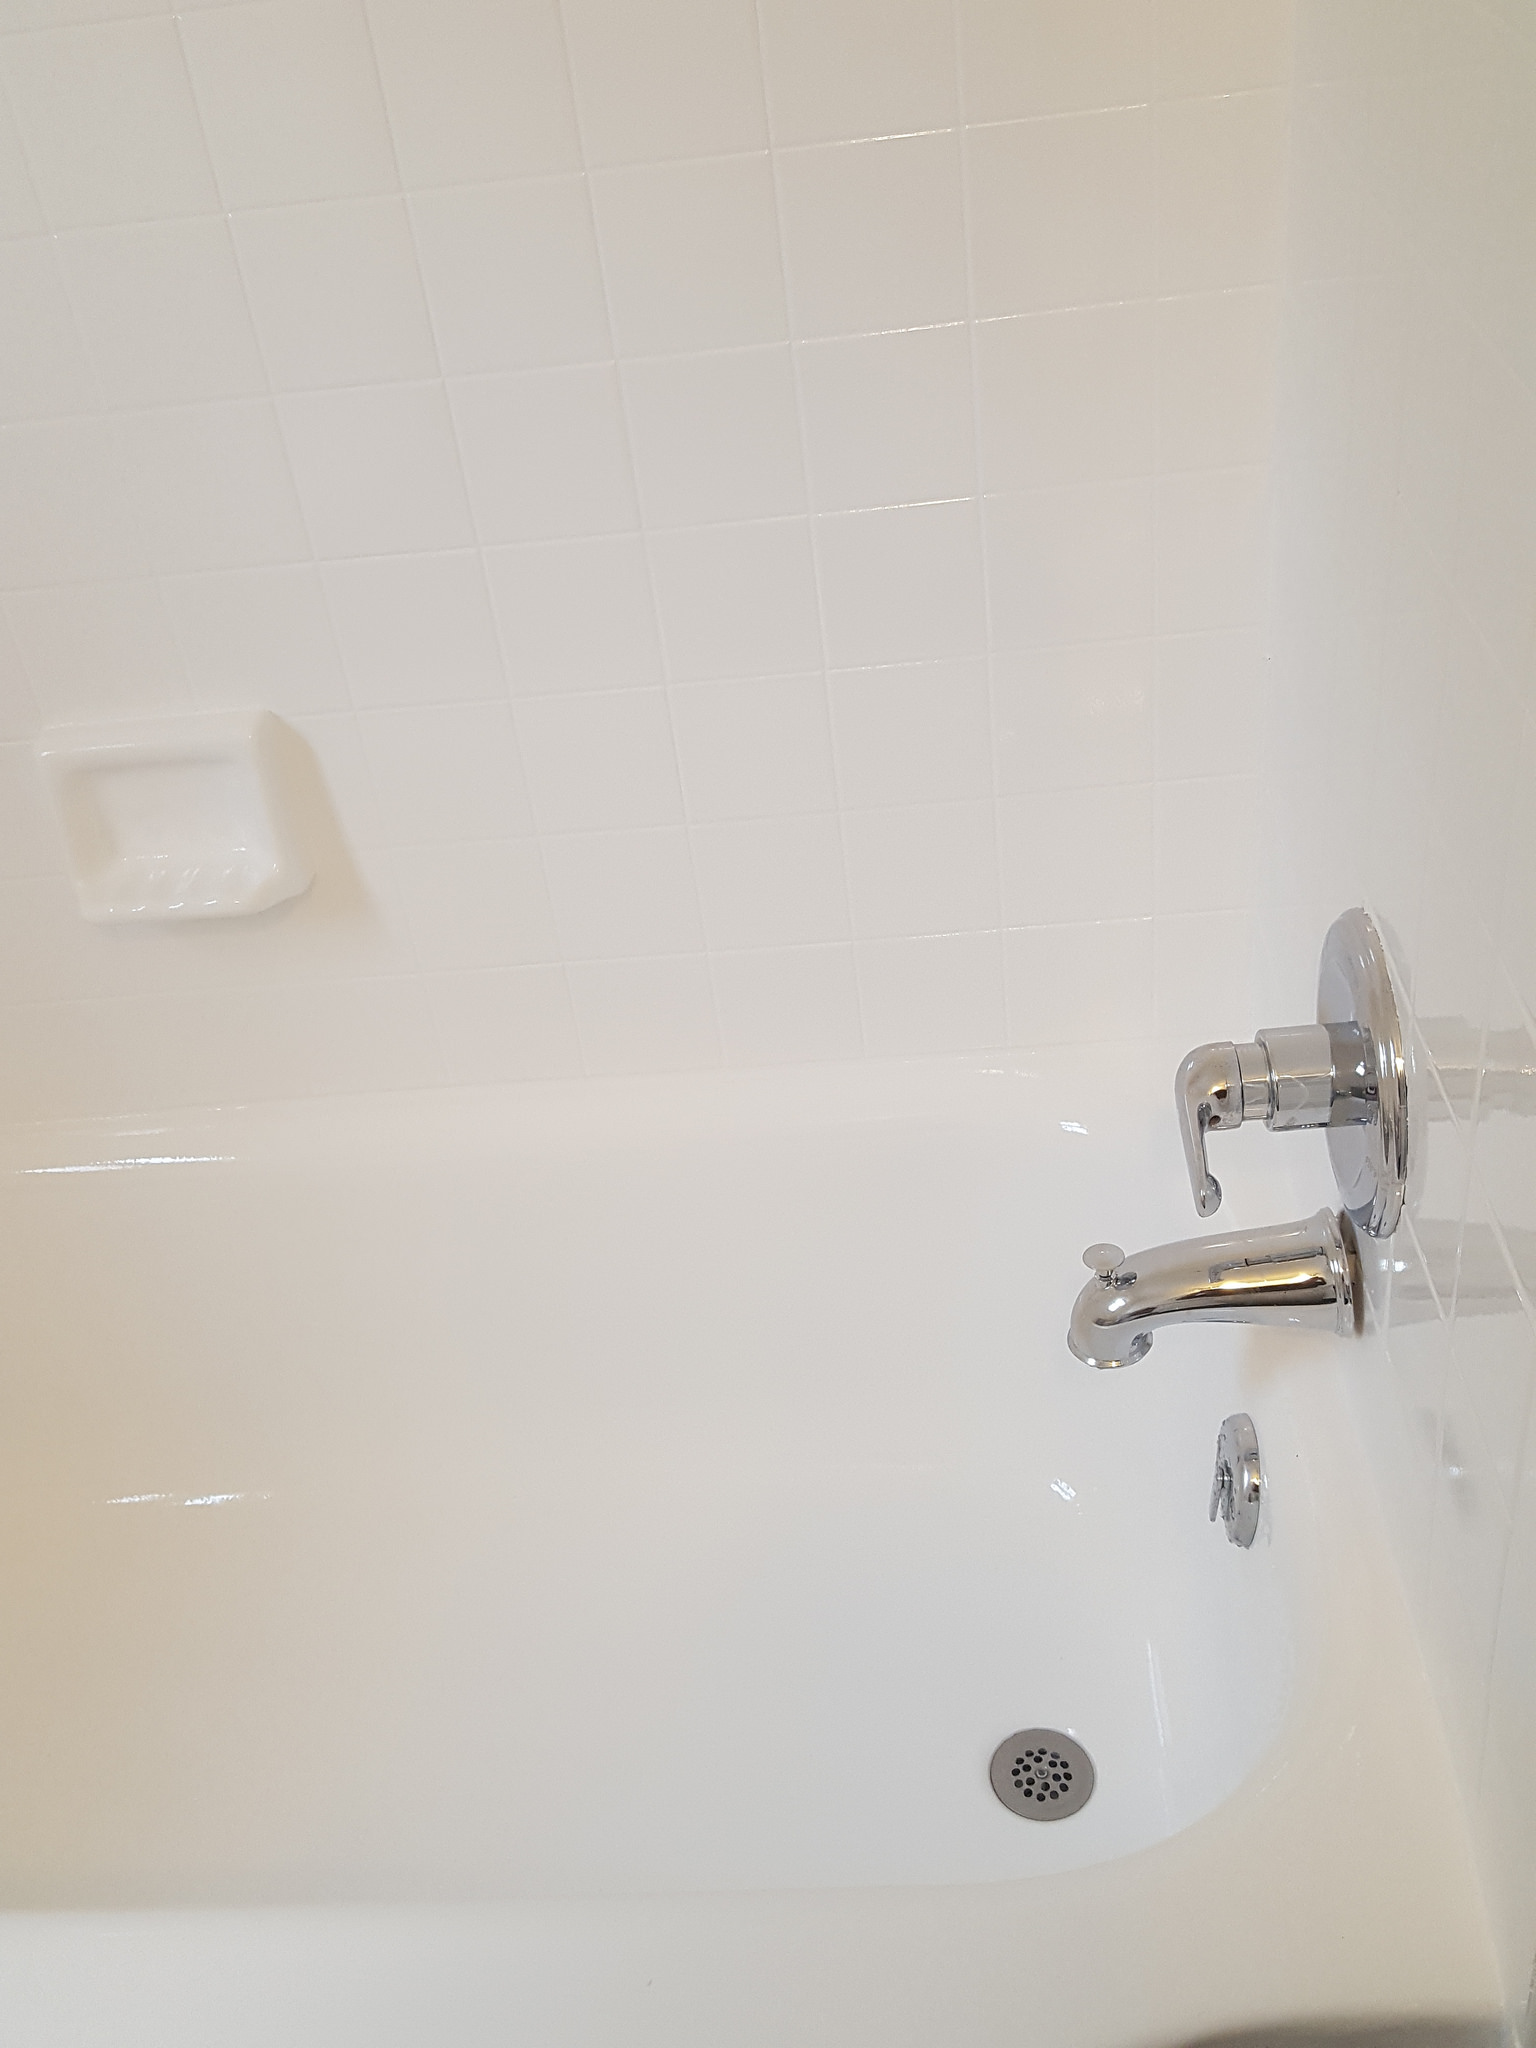 florida photos b o miami refinishing reviews biz bathtub repaint